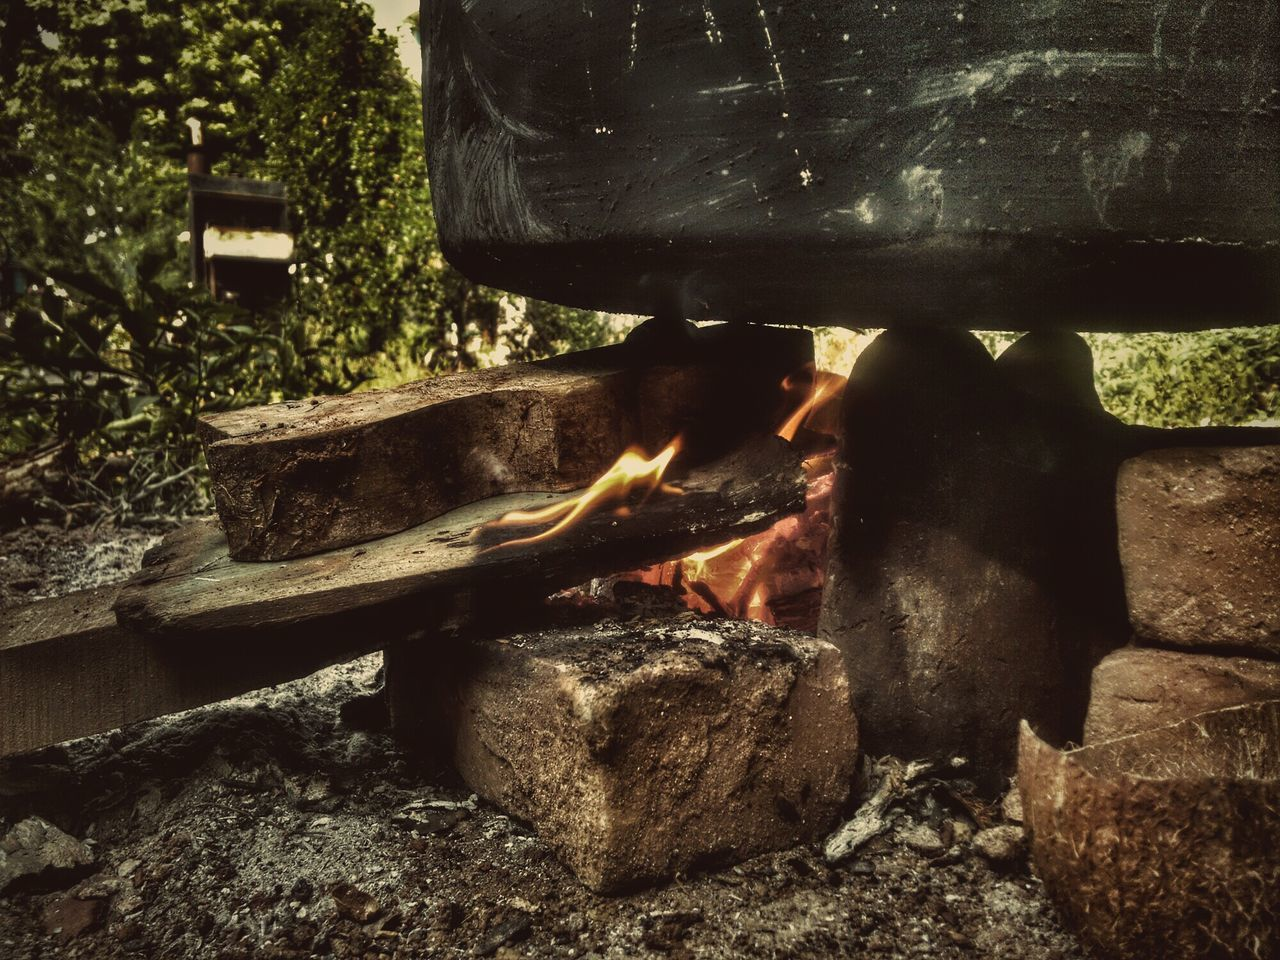 Close-Up Of Food Being Cooked On Campfire